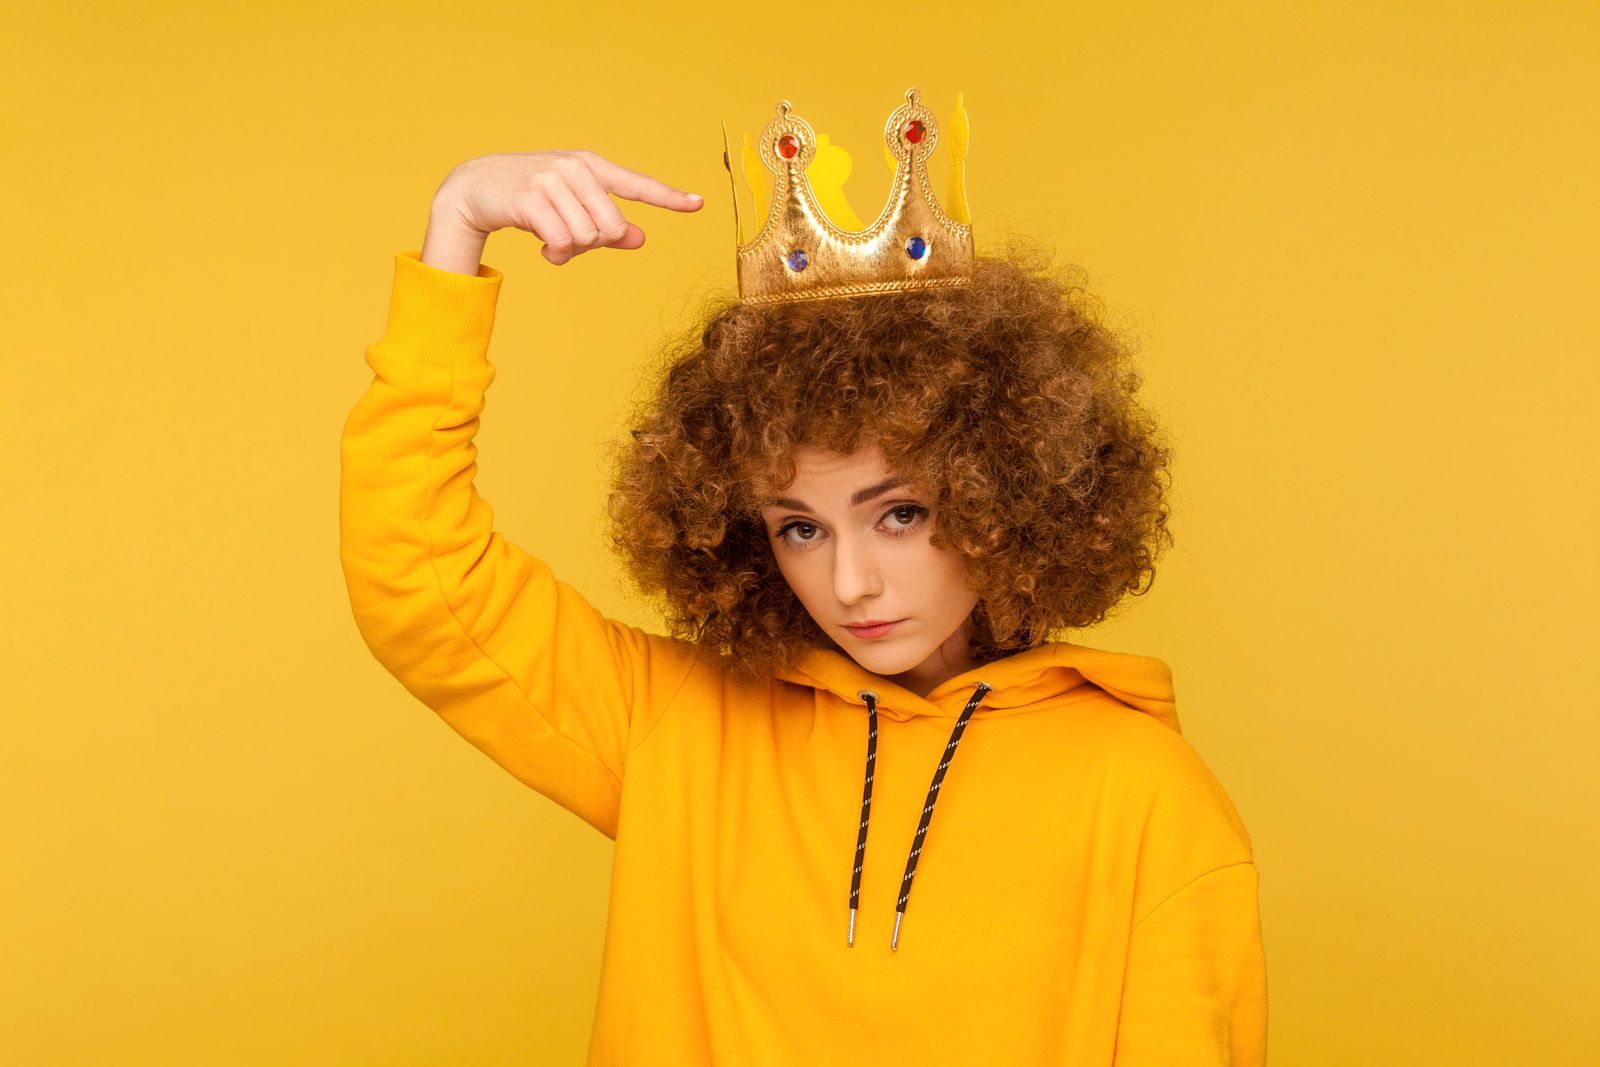 Look, I am best! Selfish haughty curly-haired woman pointing at crown on head and looking with arrogance